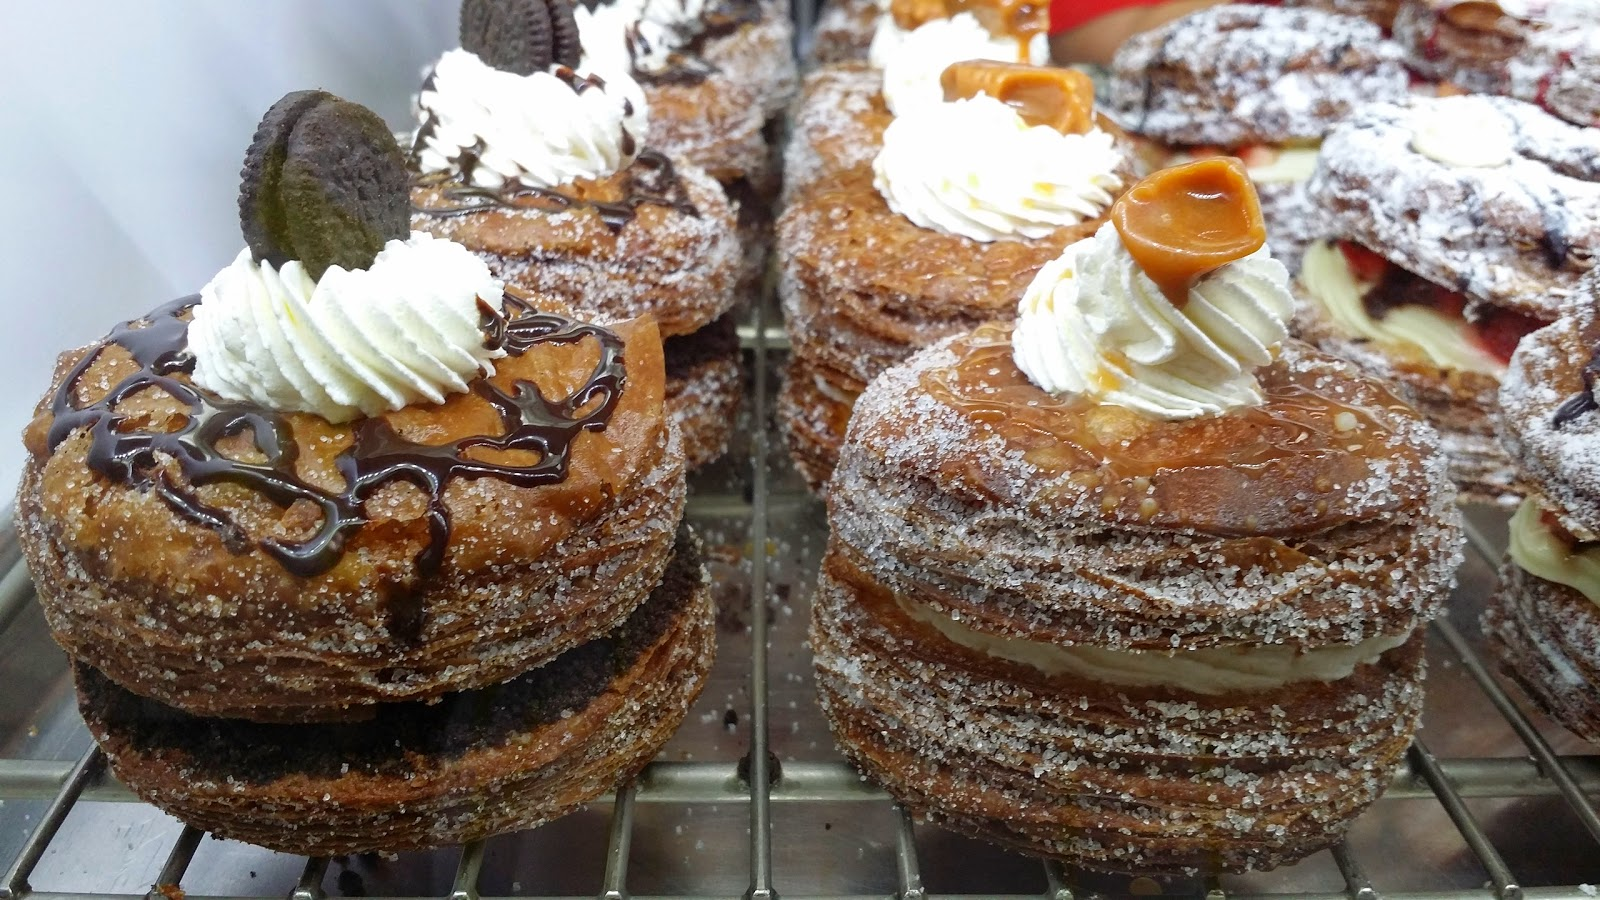 BEAUTIFULLY HANDCRAFTED DONUTS & CRONUTS / DOSSANTS @ FRIENDLY DONUTS - ORANGE